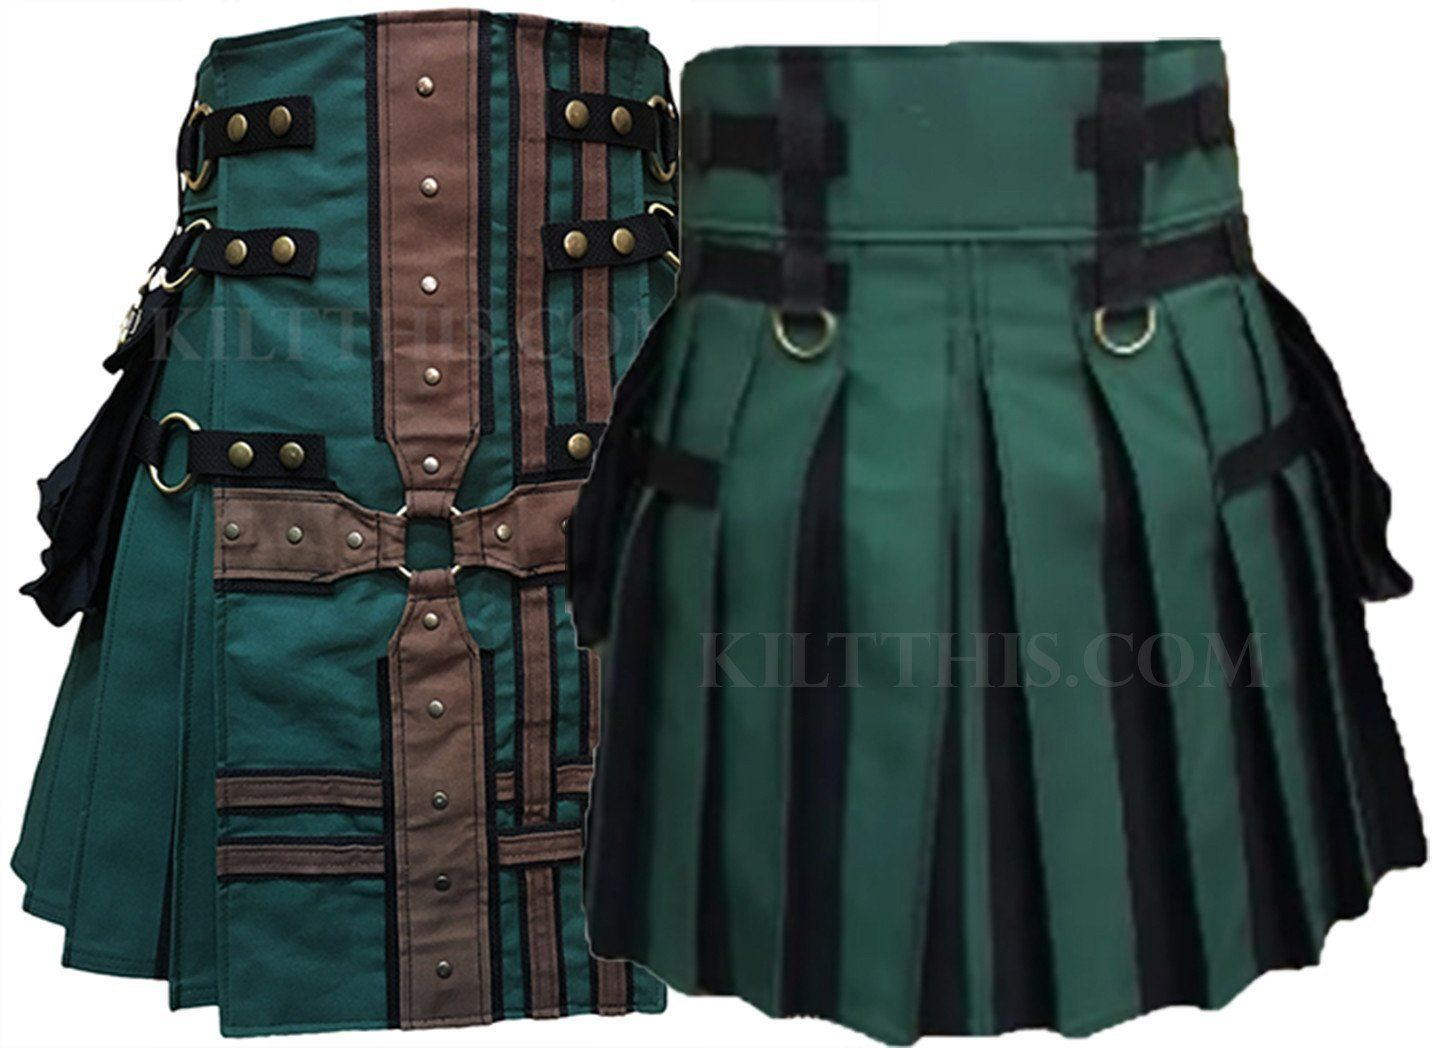 Interchangeable Hunter Green Brown Canvas Cargo Utility Kilt Medieval Cross Design Flash Pleats